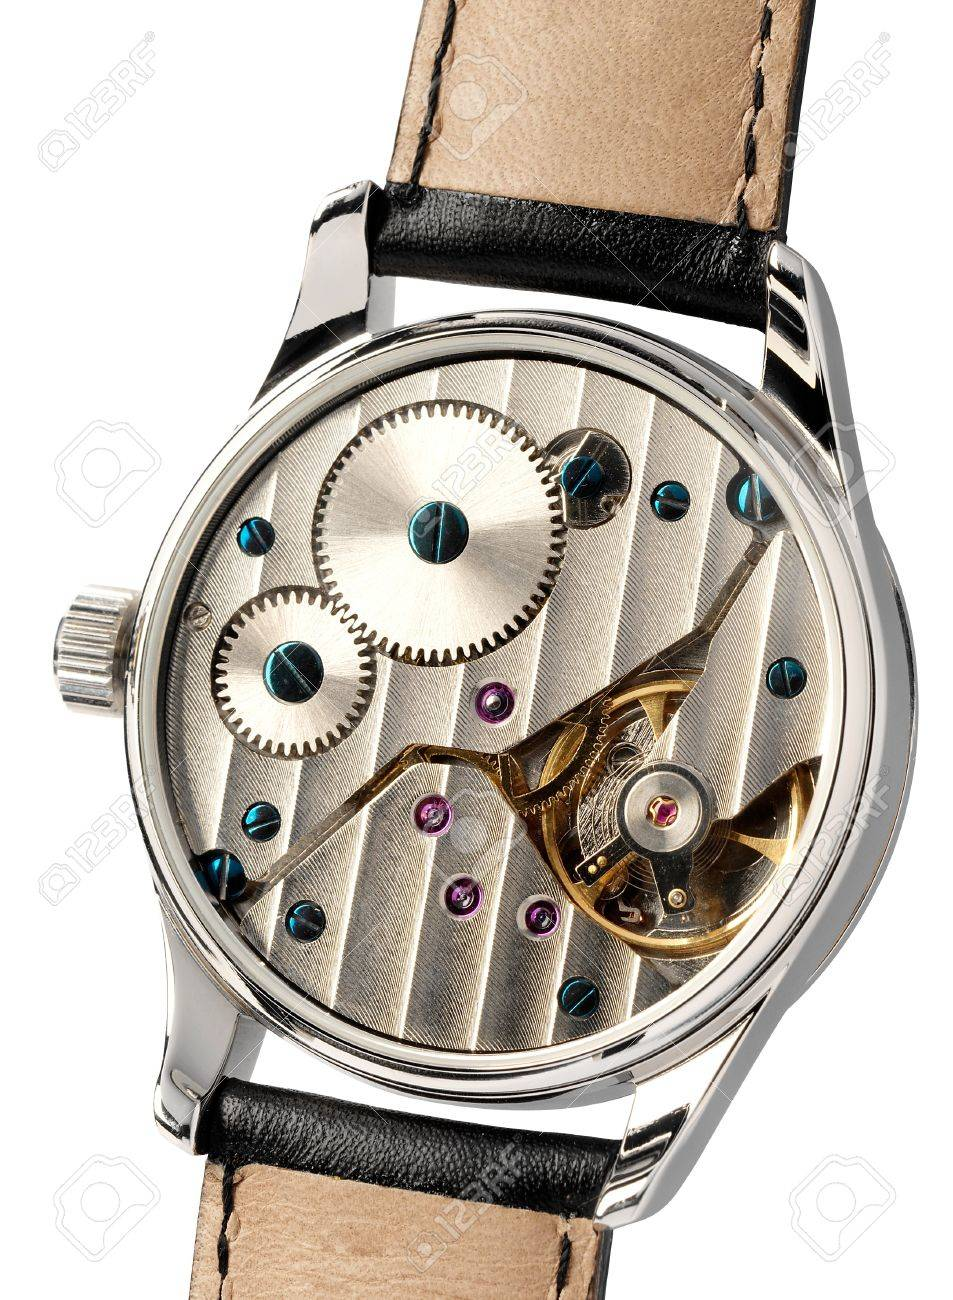 Cherche type de montre a mécanique apparente, mais pas skeleton 17893829-Wristwatch-with-the-back-cover-removed-displaying-the-mechanism-with-its-gears-and-escapement-isolat-Stock-Photo